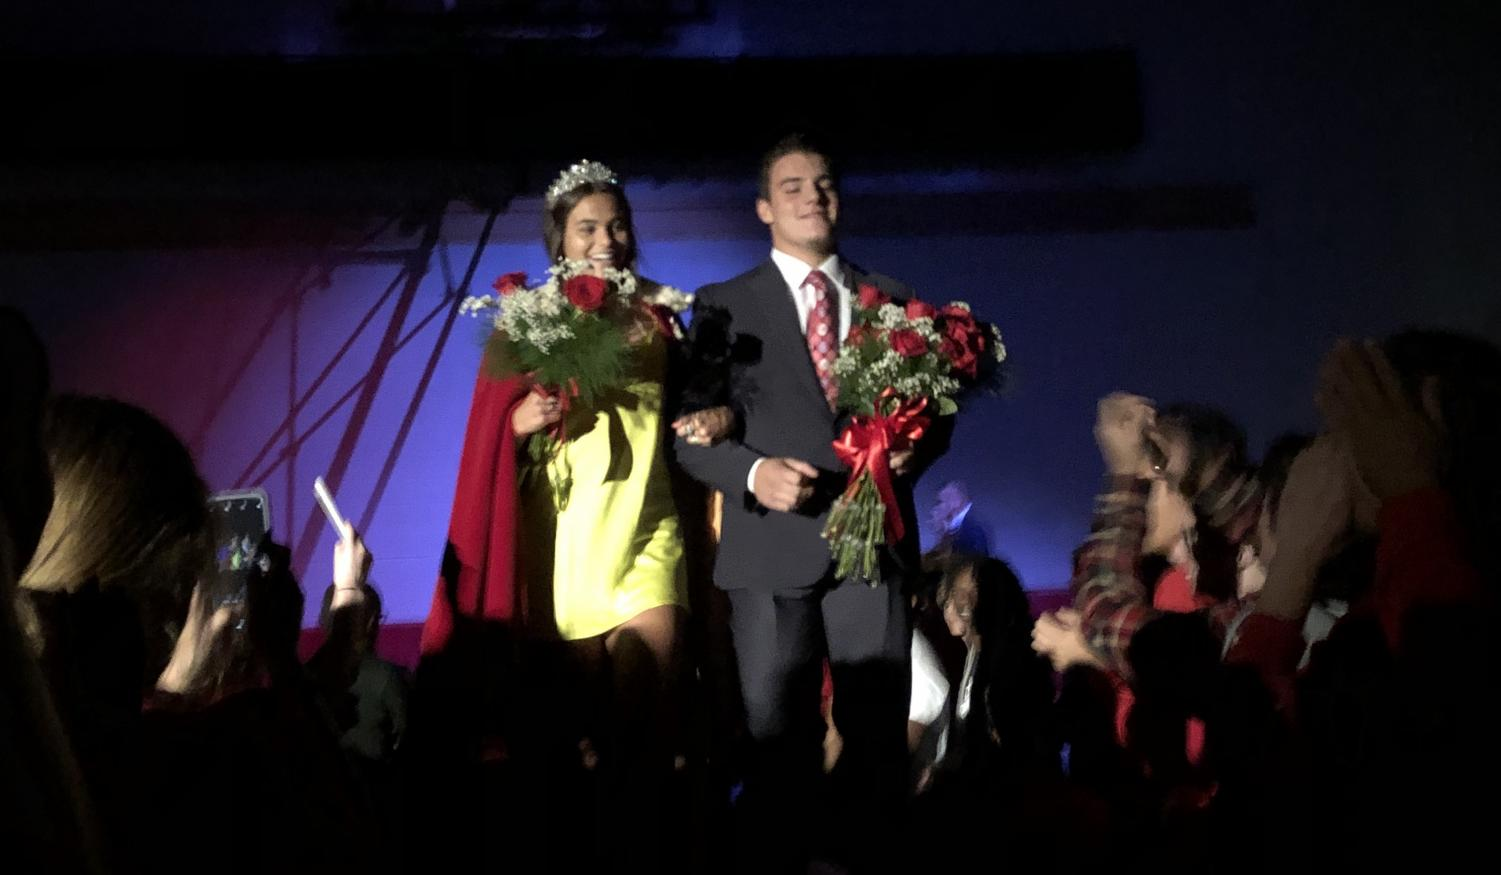 Seniors Joe Marinaro and Frida Fortier celebrate their selection as king and queen of this year's Homecoming Week.